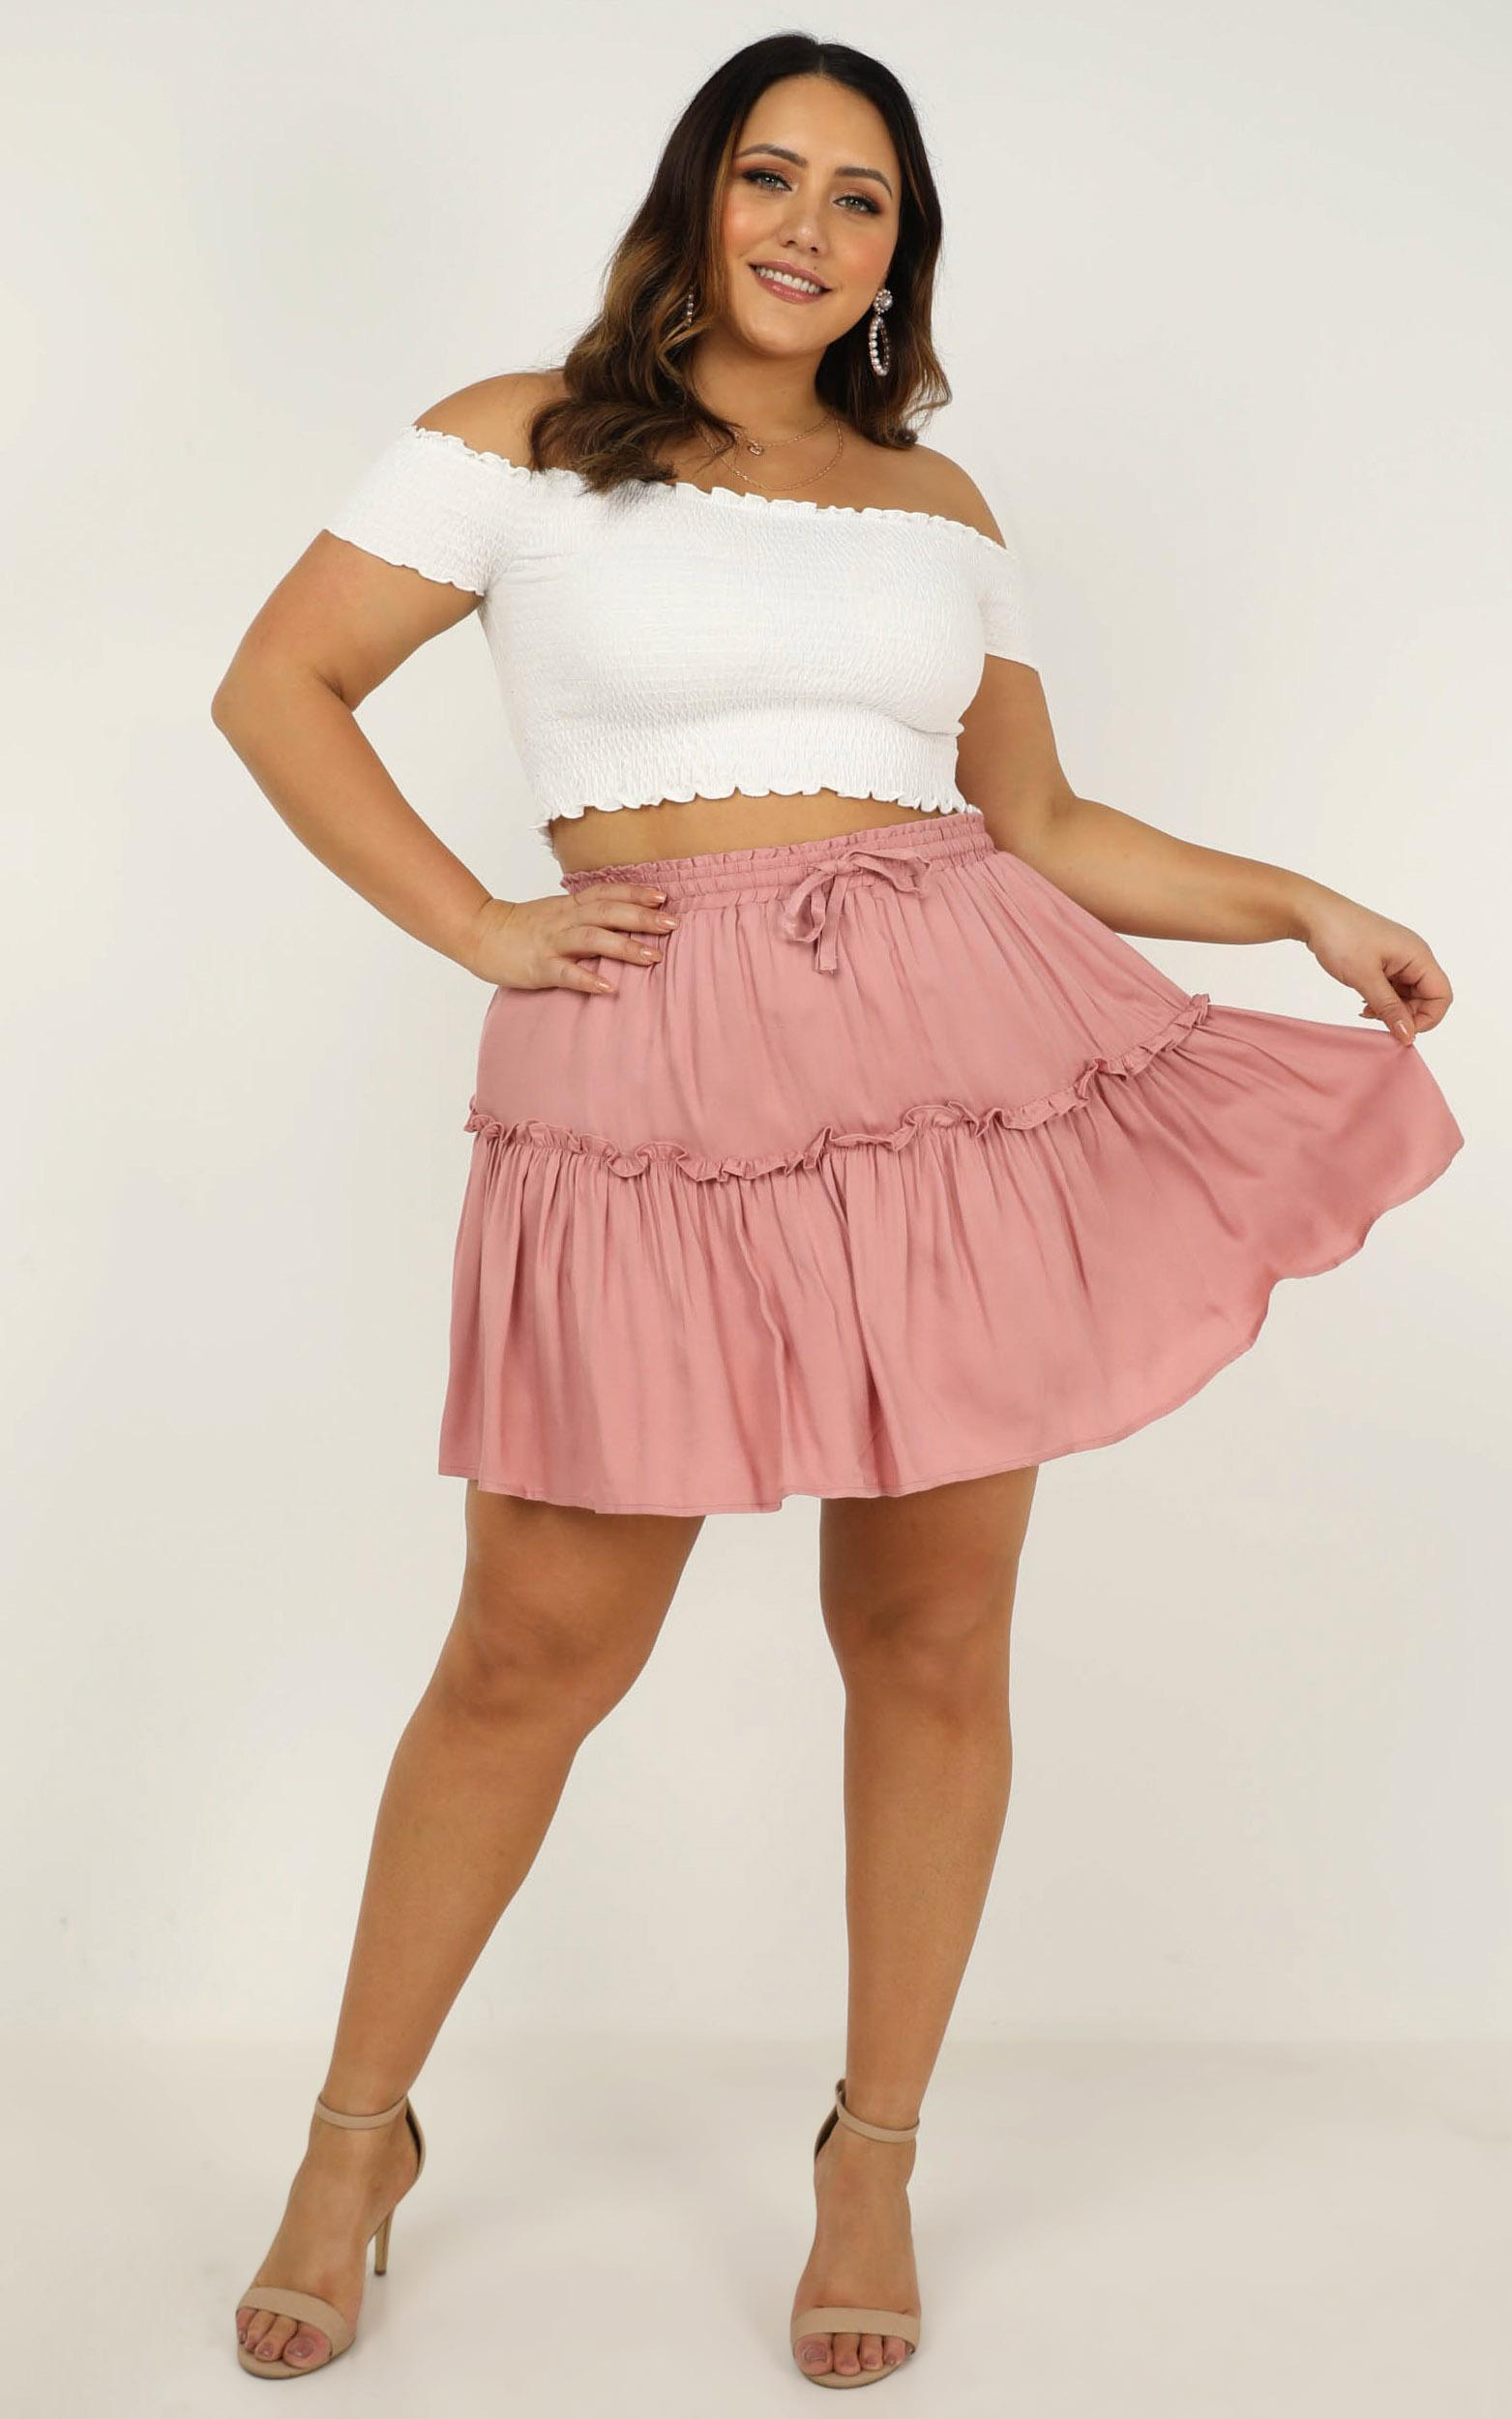 Triple Check Skirt In blush linen look - 20 (XXXXL), Blush, hi-res image number null